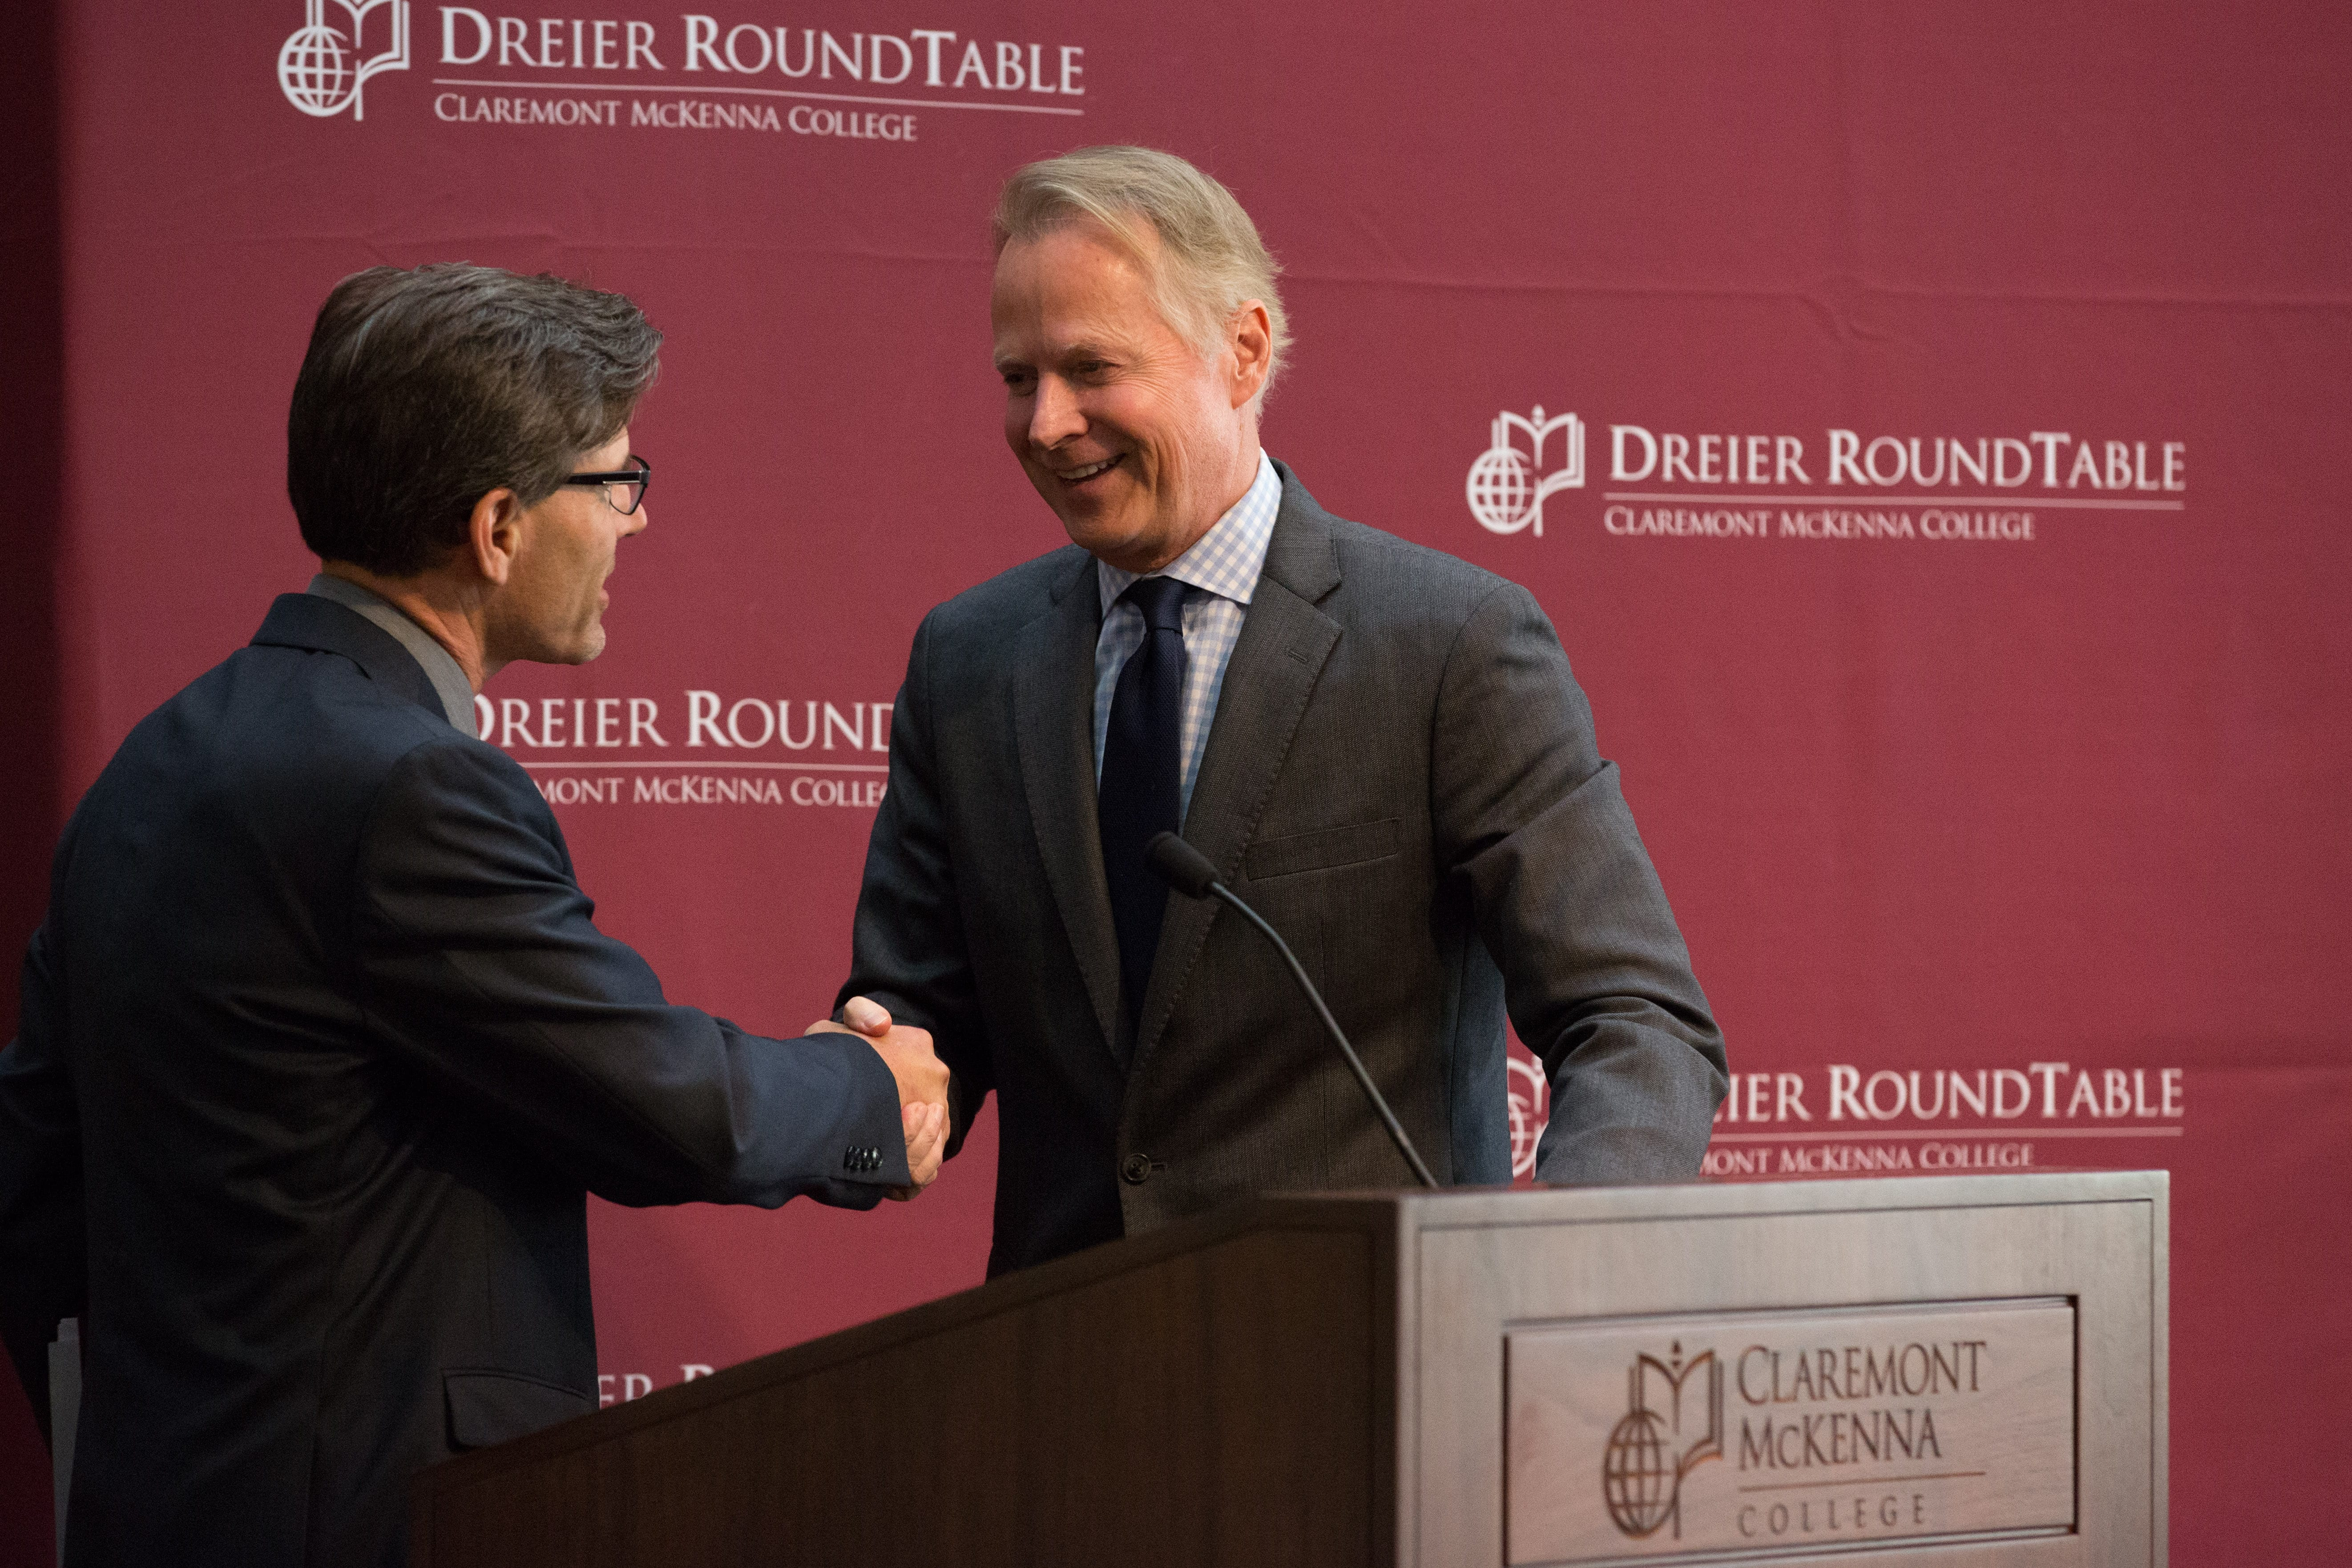 President Chodosh welcoming David Dreier.